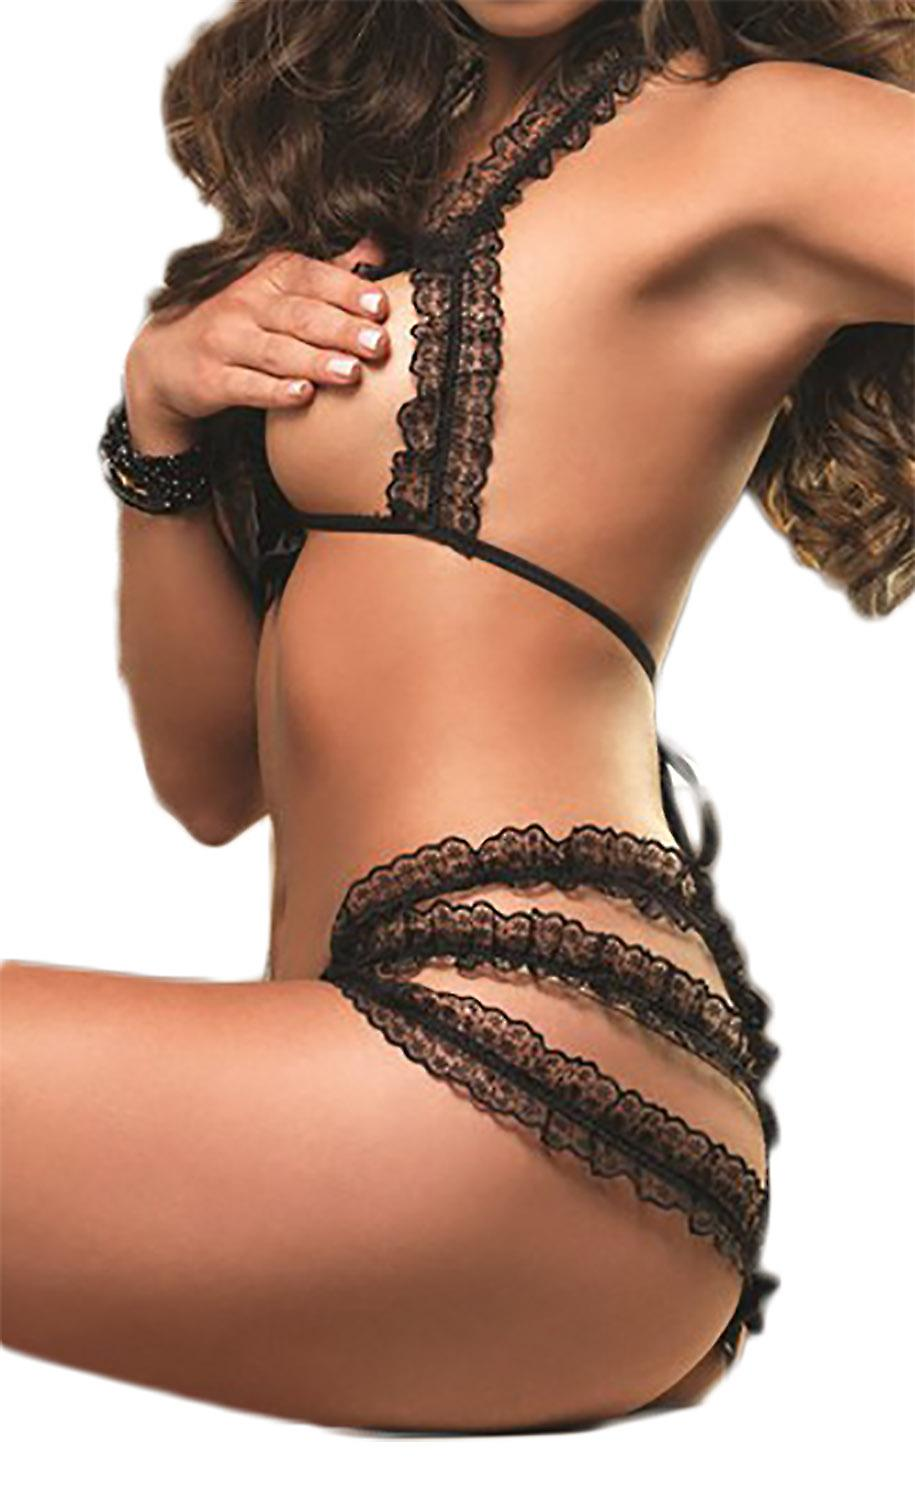 Waooh69 - Set lingerie with lace open Bica